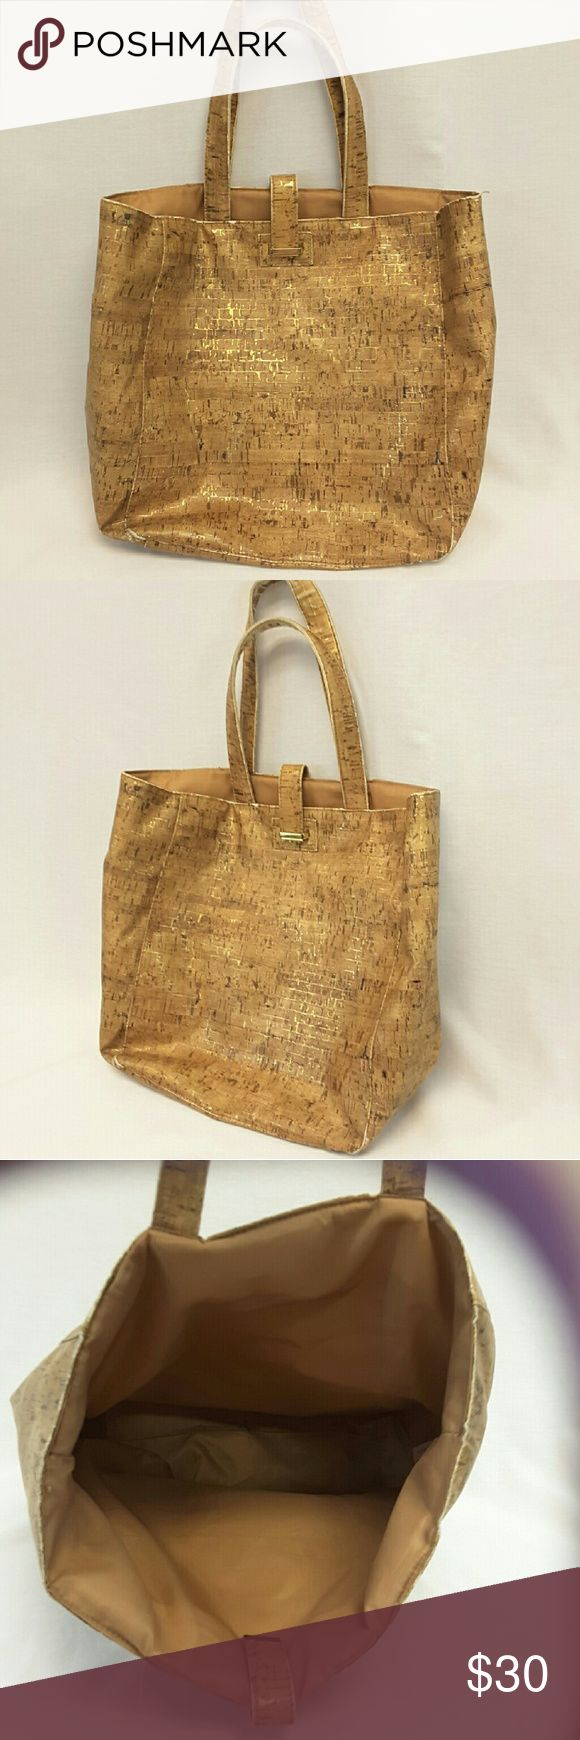 """40% BUNDLE DISCOUNT! FREE SHIPPING ON BUNDLES!! ESTEE LAUDER Handbag Tote, sparkling woodgrain pattern, lightweight, washable, slight wear on inside handles and bottom edges not visible (see pic #4),  approximate measurements: 10"""" length, 6"""" wide, 12.5"""" tall. 40% BUNDLE DISCOUNT! FREE SHIPPING ON BUNDLES!! ?OFFER? $6 LESS ON BUNDLES! Price firm unless Bundled. Only ?offers? of $6 less on Bundles for shipping reimbursement. Estee Lauder Bags Totes"""